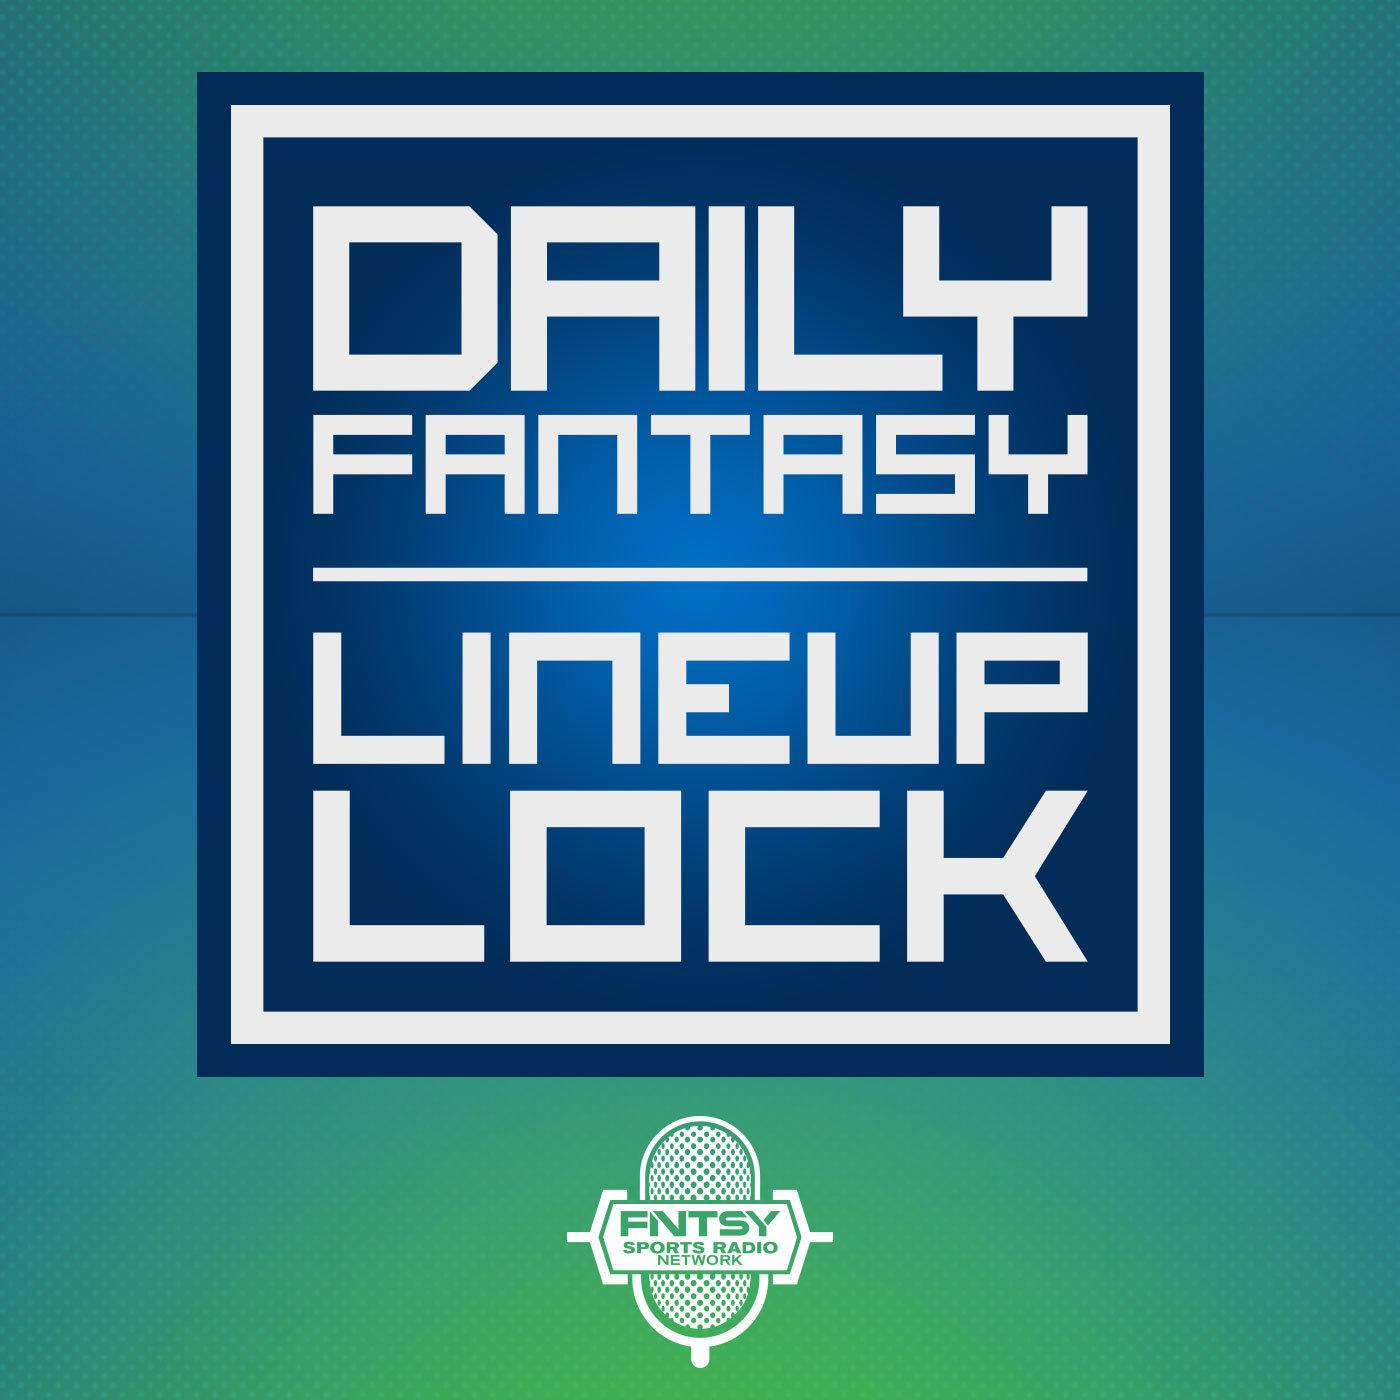 DFS Lineup Lock (podcast) - FNTSY Sports Radio Network